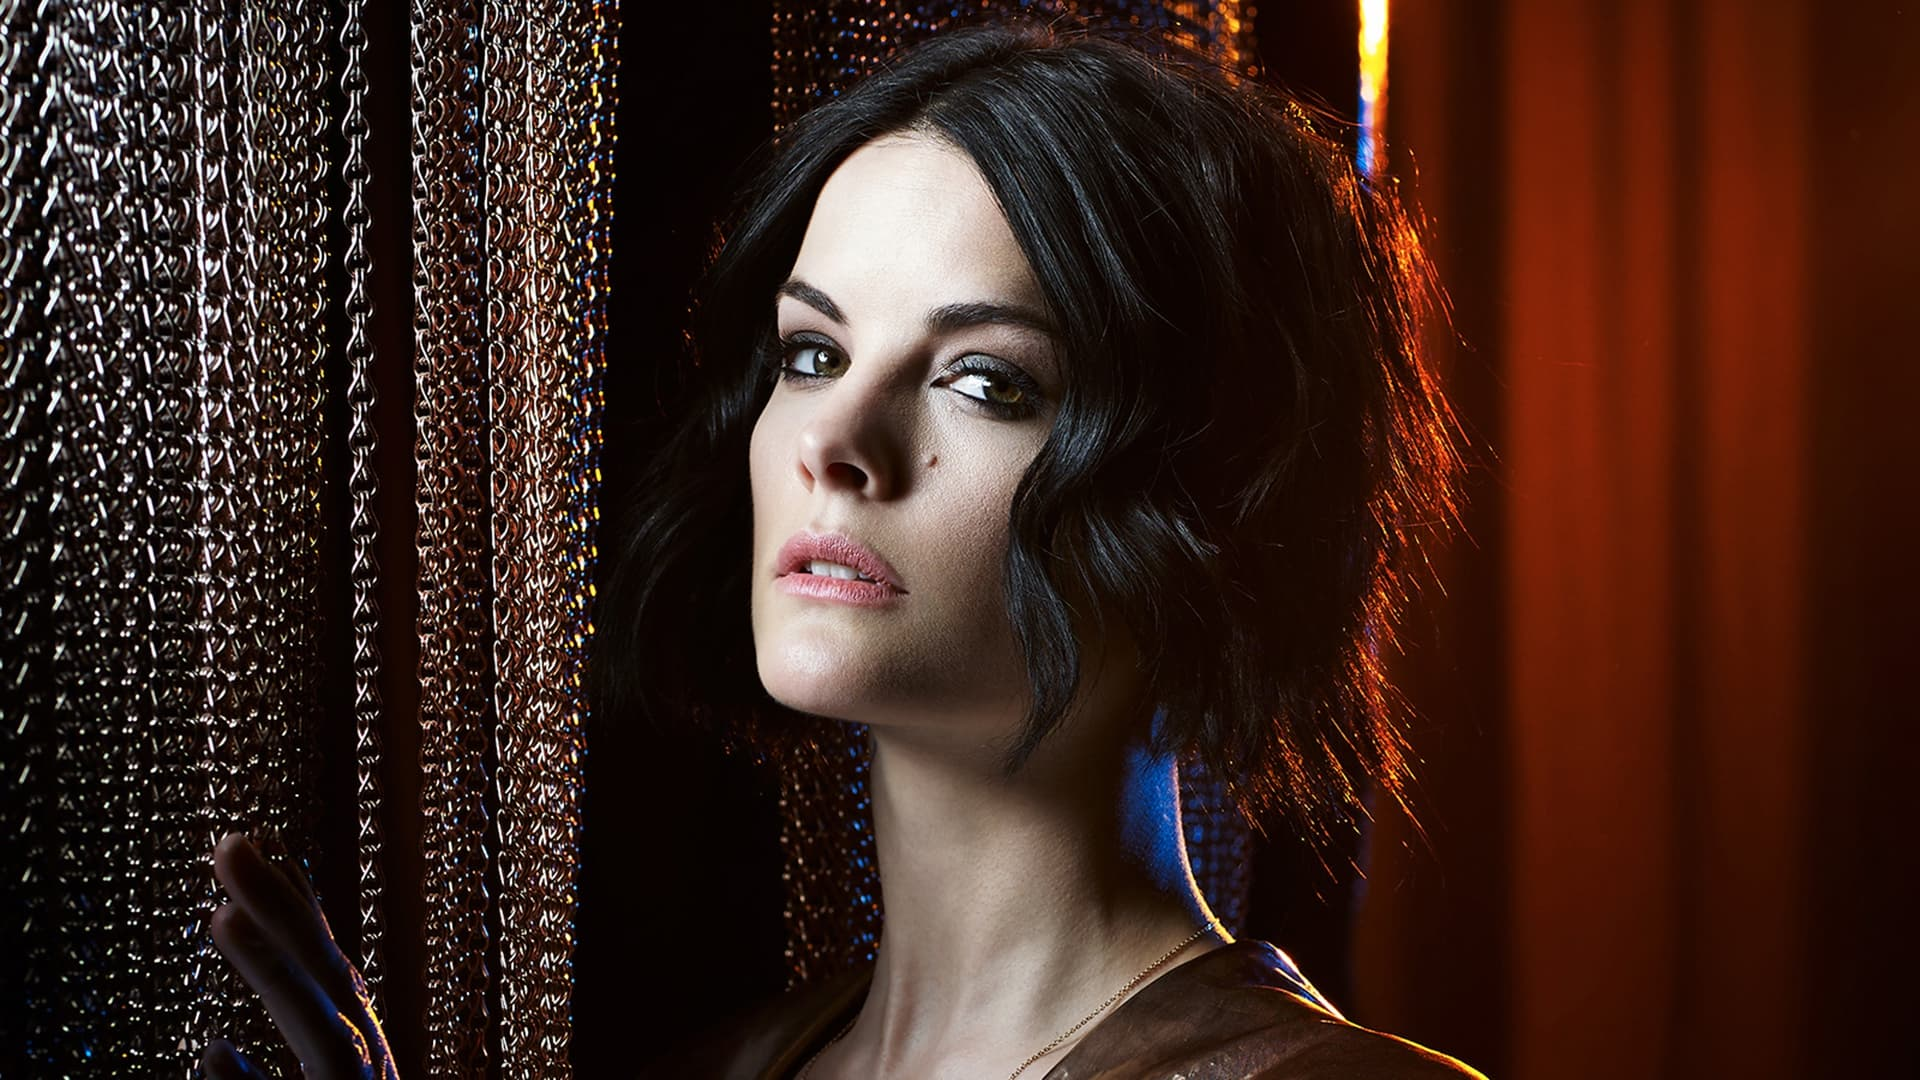 Jaimie Alexander Wallpapers, Pictures, Images